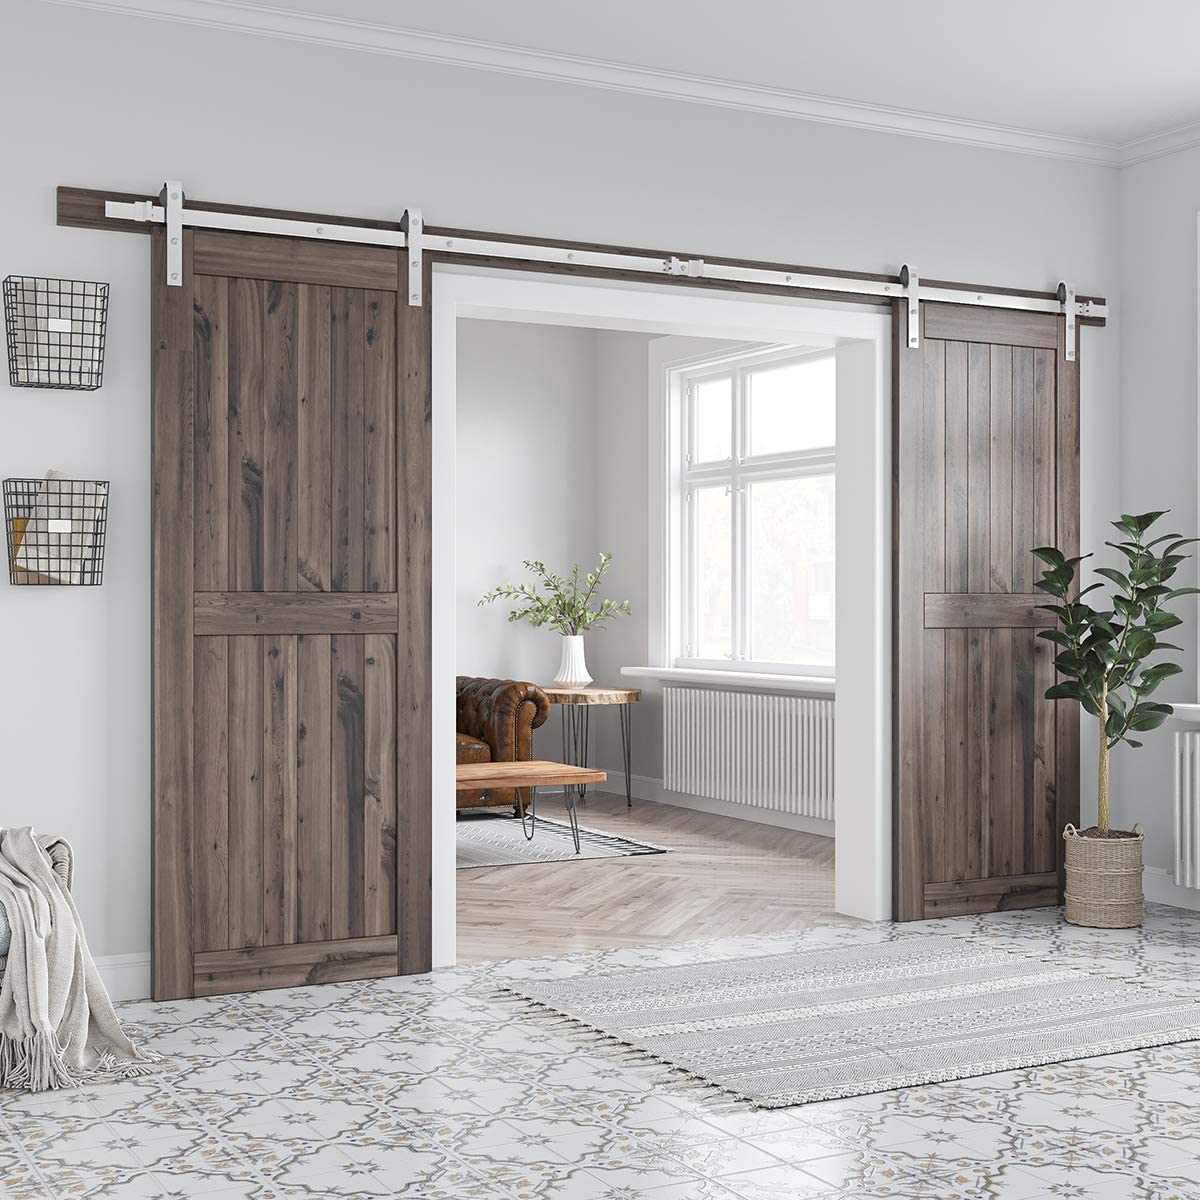 Easy to install SMARTSTANDARD 12ft Heavy Duty Double Door Sliding Barn Door Hardware Kit Smoothly and Quietly J Shape Hanger Includes Step-By-Step Installation Instruction Fit 36 Wide Door Panel